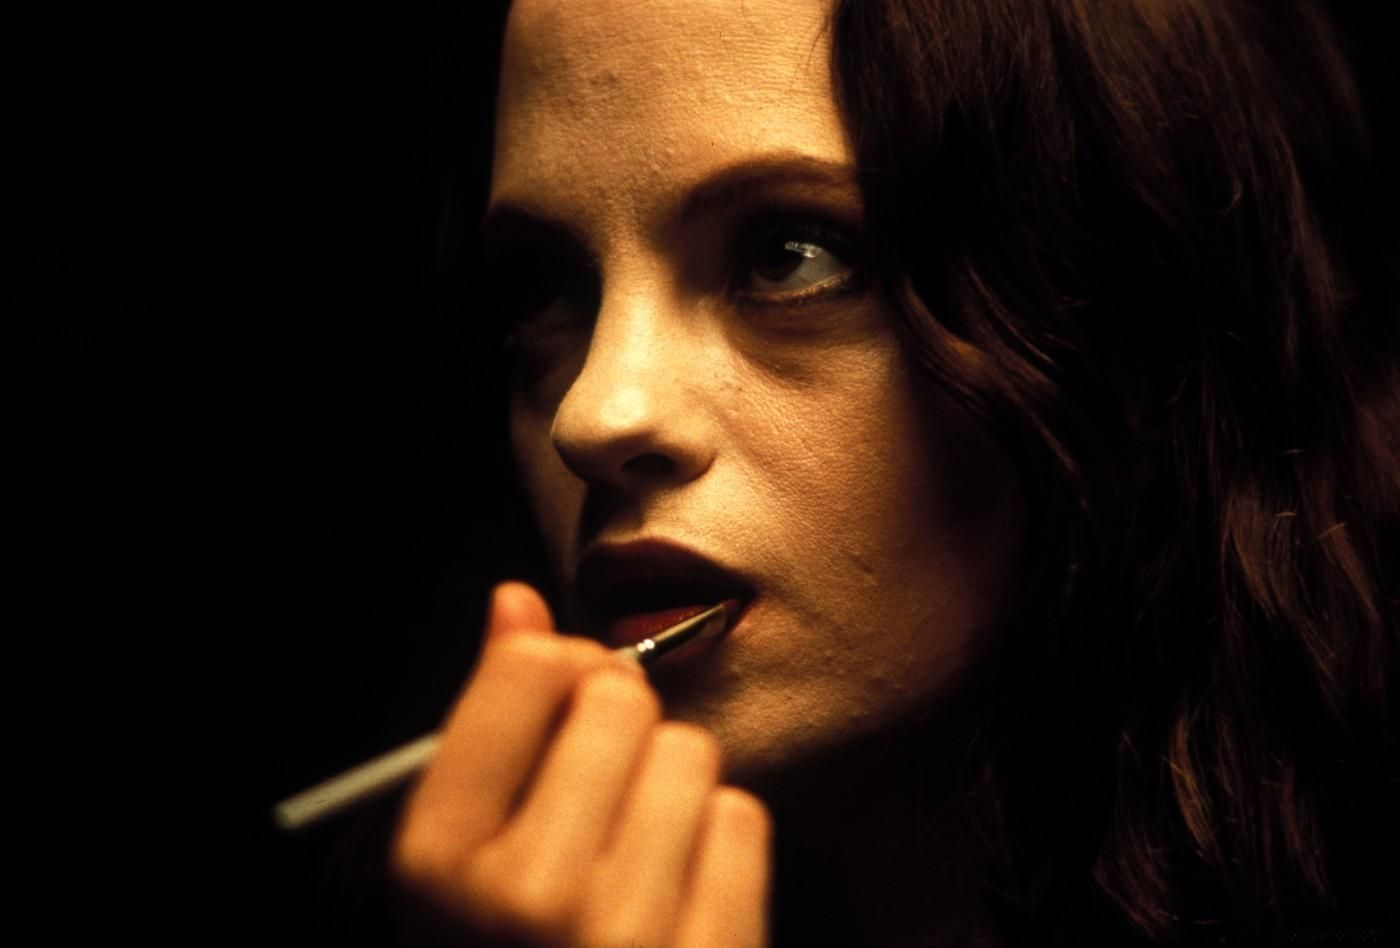 All About Anna 2005 Movie the 40 best horror movies of the 2000s | collider